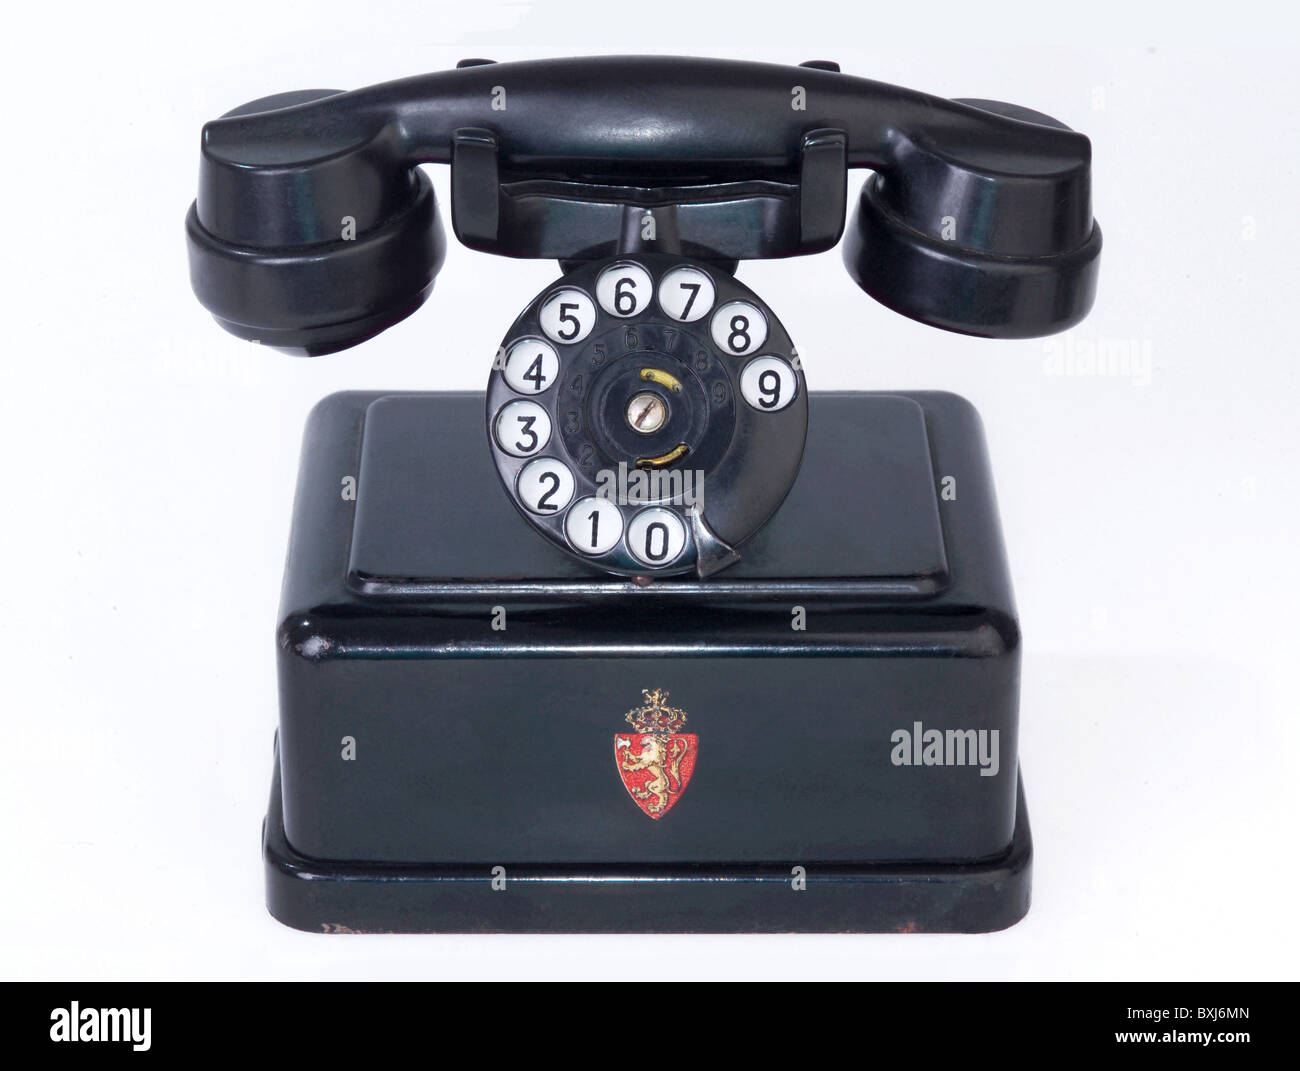 technics telephones telephone by a s elektrisk bureau oslo stock photo royalty free image. Black Bedroom Furniture Sets. Home Design Ideas